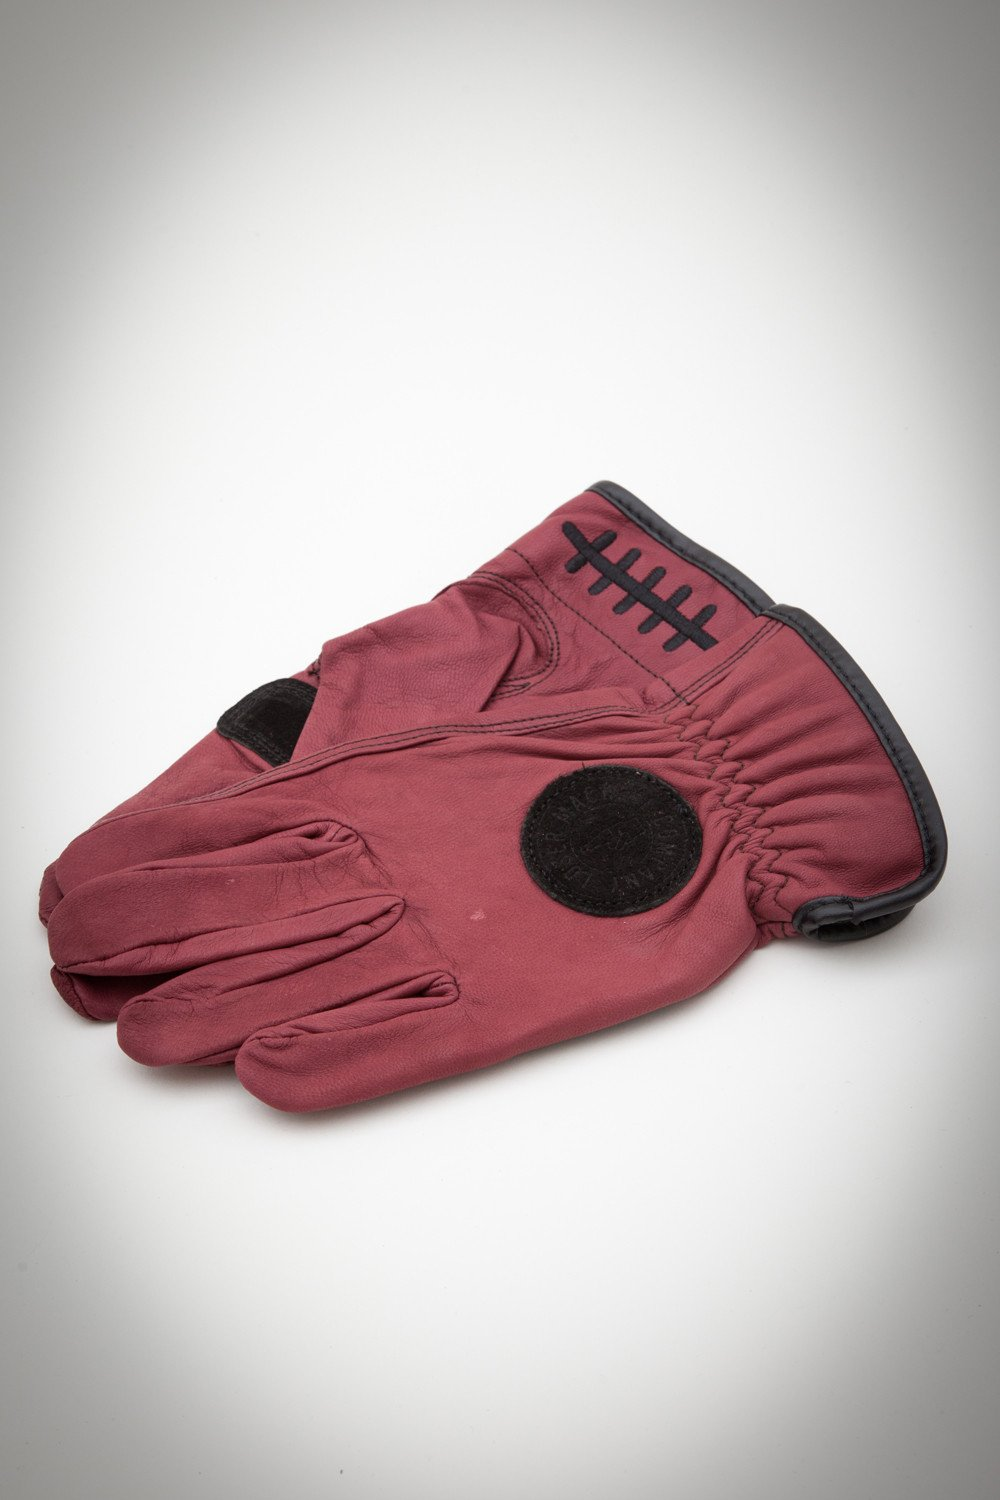 Loser Machine Death Grip Glove Oxford